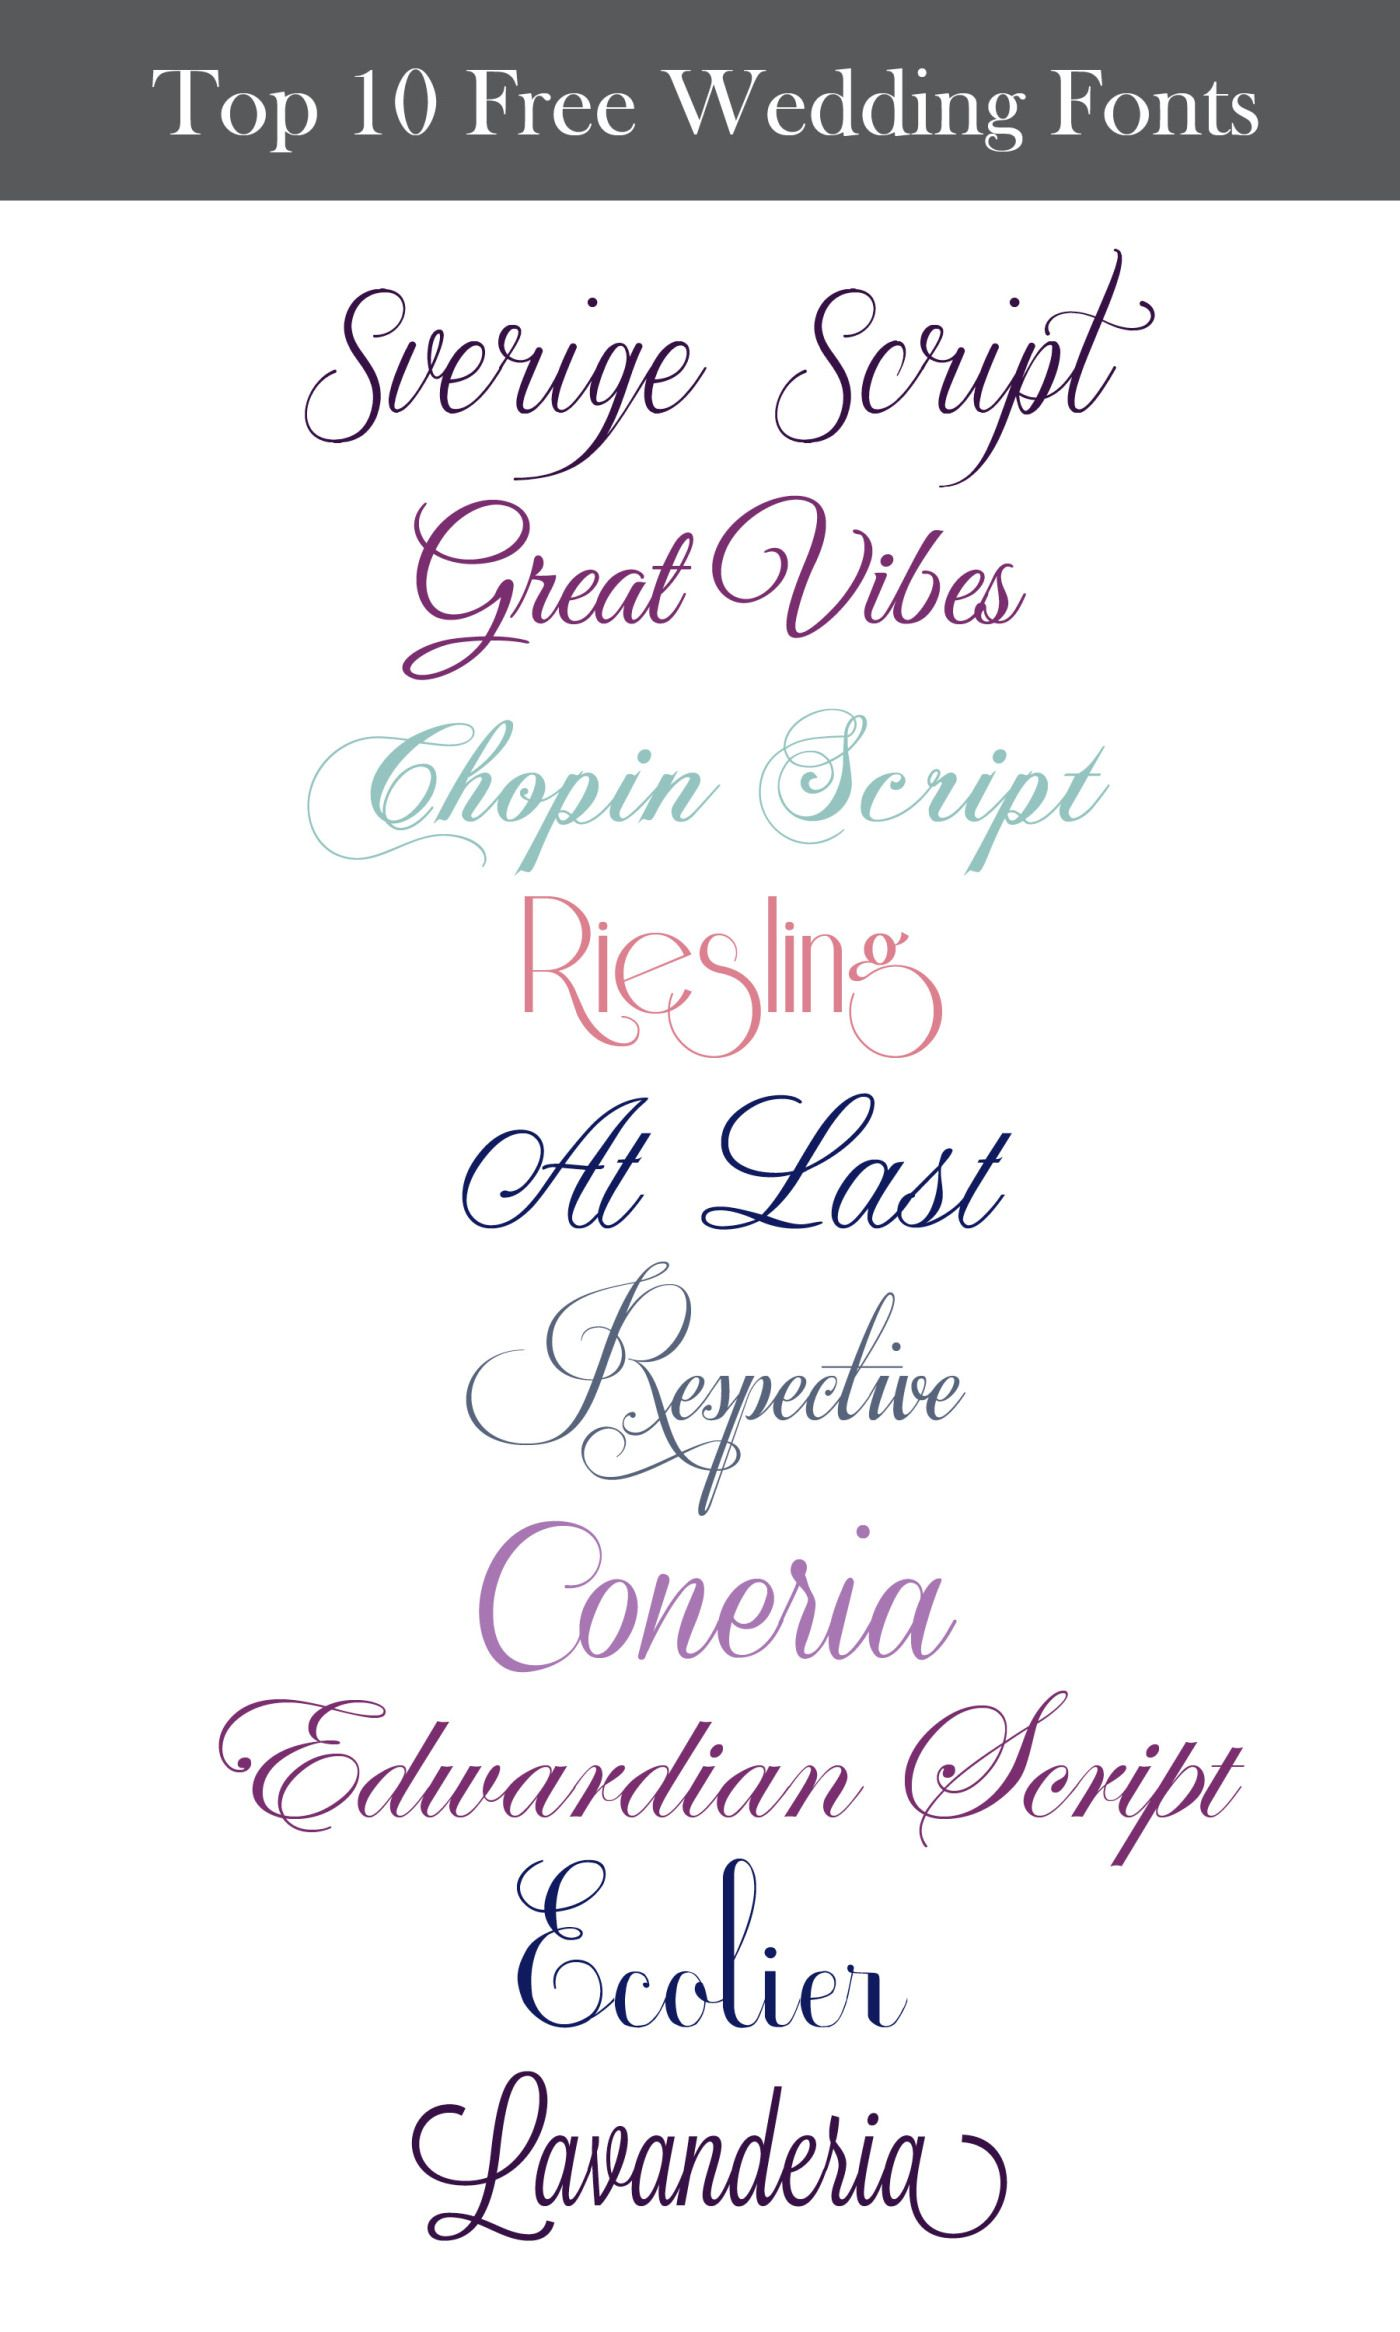 Inspiration Wednesday Free Wedding Fonts Fonts Inspiration and